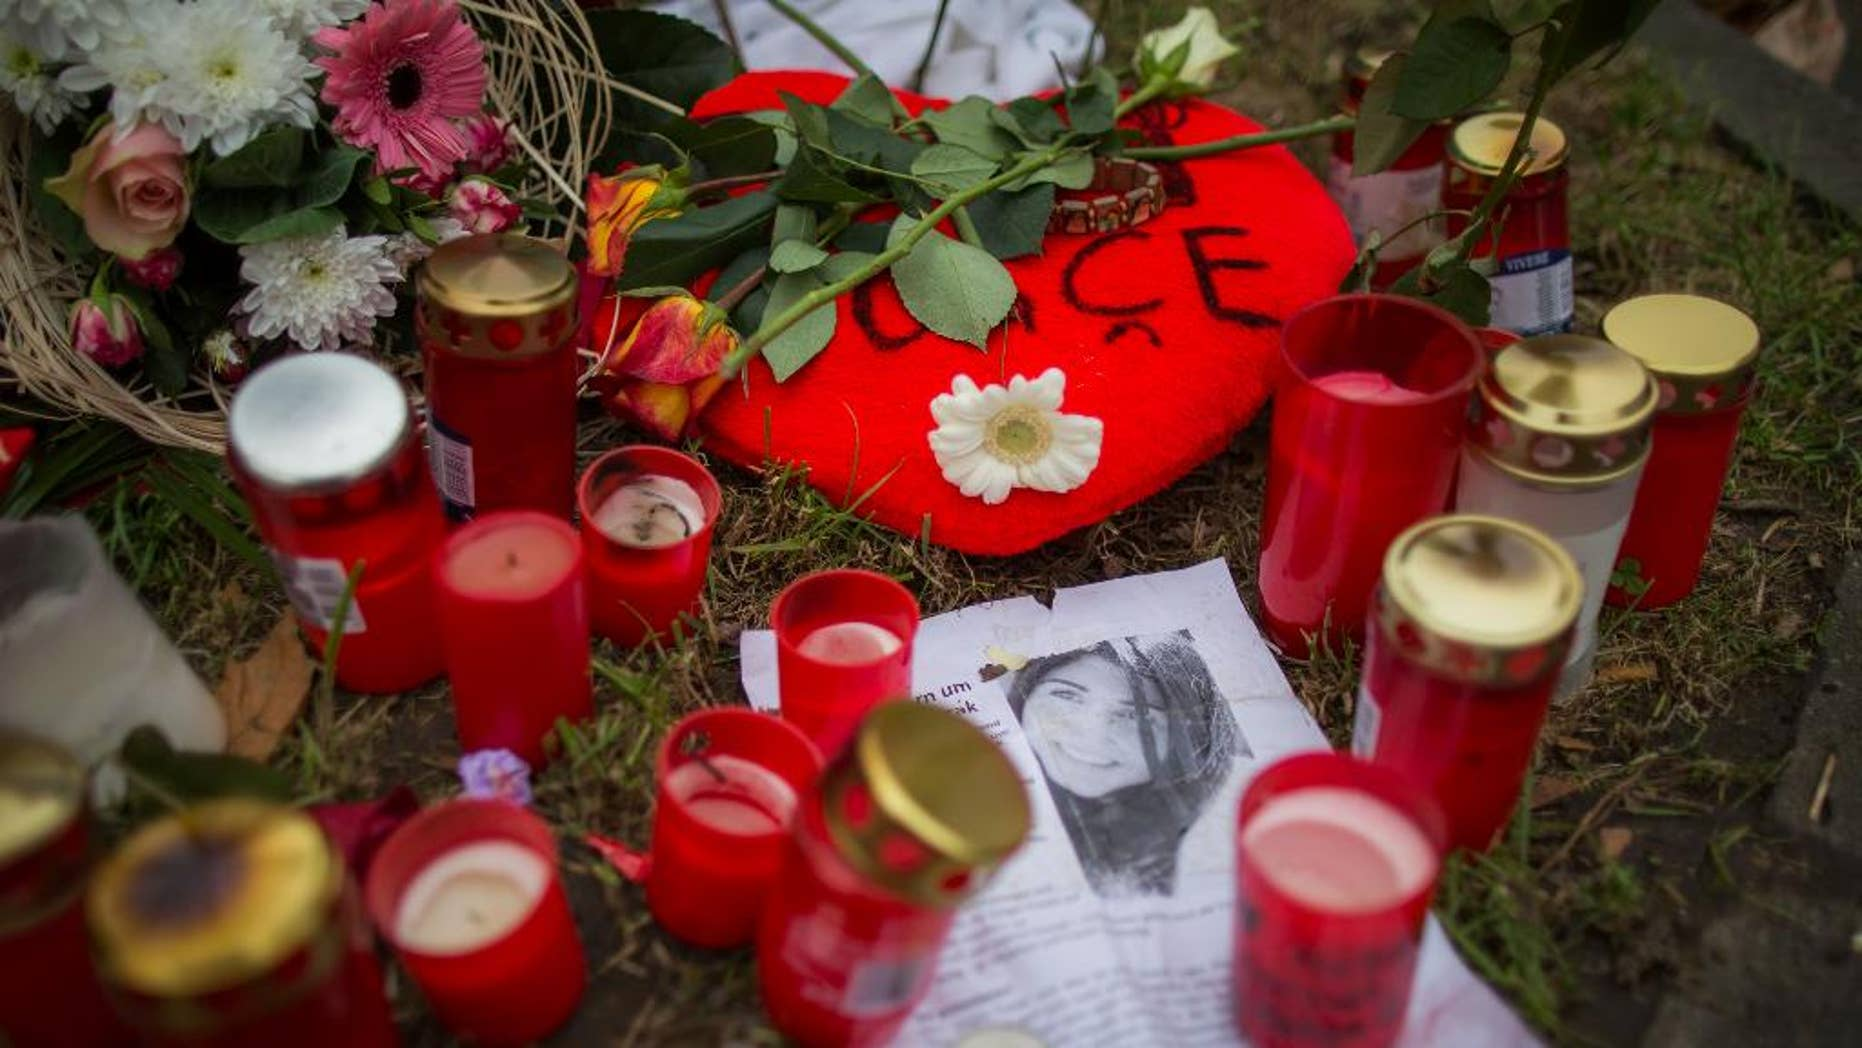 Candles and flowers are placed on the parking lot where Tugce was fatally injured two weeks ago in Offenbach, Germany, Monday Dec.1, 2014. Germany's president is considering awarding a posthumous medal to the  young woman killed after defending two teenage girls from male harassment.   German news agency dpa reported Sunday that President Joachim Gauck was mulling the honor amid an outpouring of public outrage over the killing.   Student teacher Tugce Albayrak died Friday, her 23rd birthday, after her family gave doctors permission to switch off her life support.  (AP Photo/dpa,Frank Rumpenhorst)